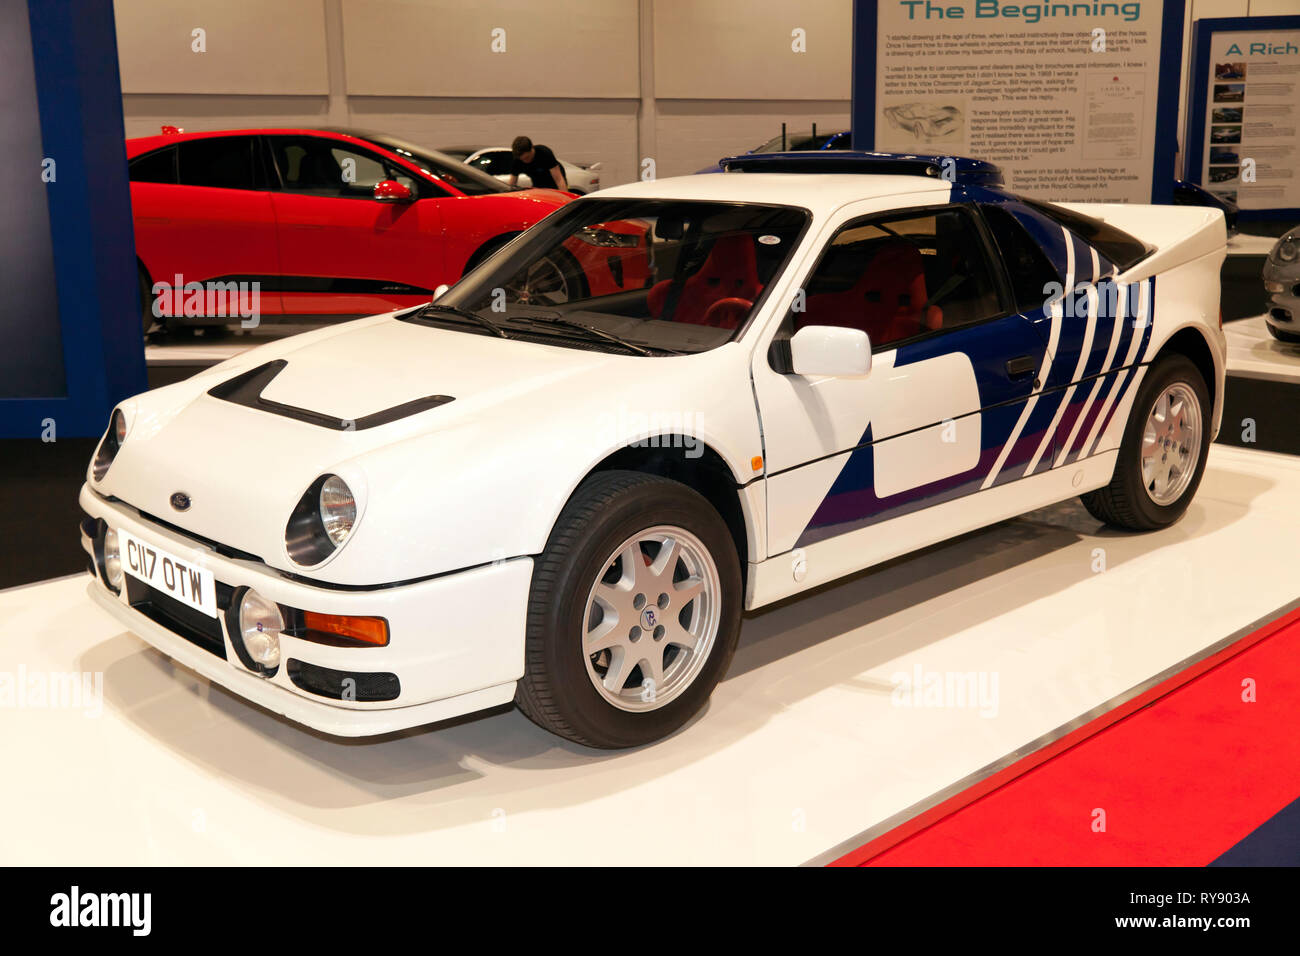 Three-quarter front-view of a 1986 Ford RS2000, on display in the Ian Callum Tribute Feature of the 2019 London Classic Car Show - Stock Image